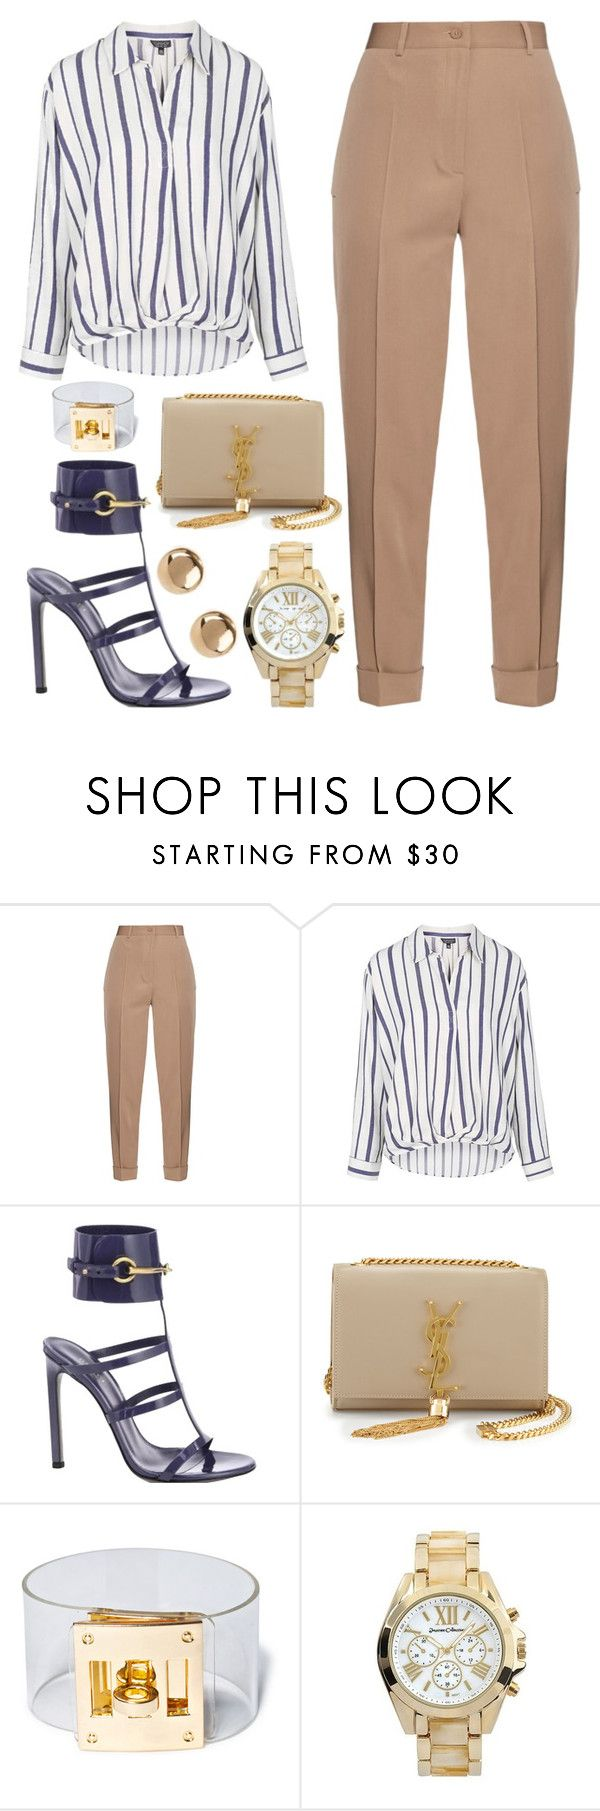 """Biddness"" by kimeechanga ❤ liked on Polyvore featuring Bottega Veneta, Topshop, Gucci, Yves Saint Laurent, Suzywan DELUXE, Journee Collection and Jules Smith"